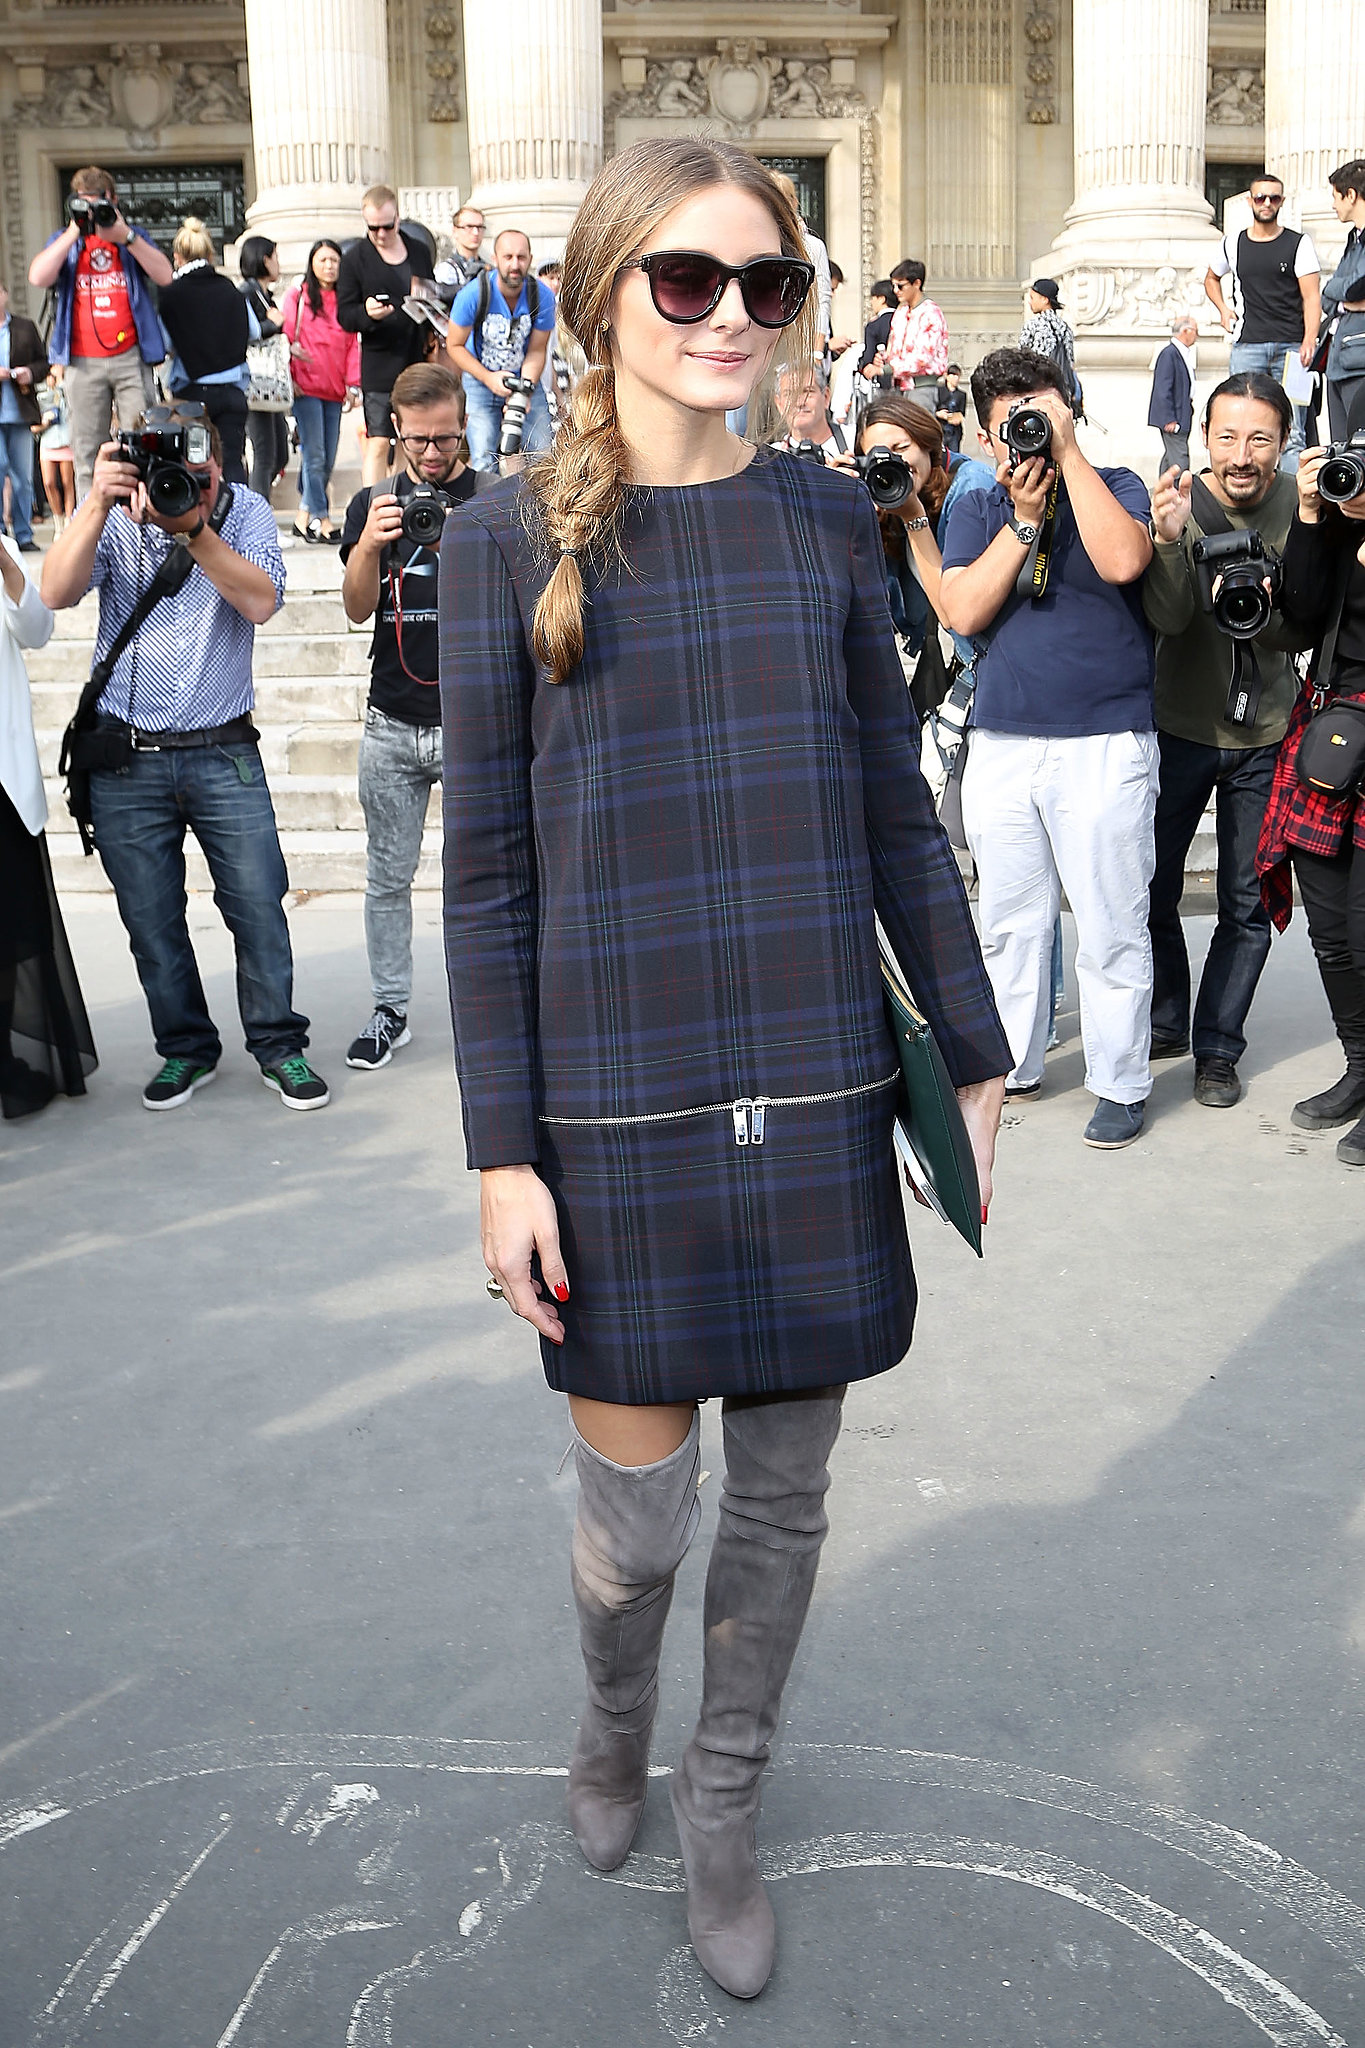 For her first appearance at Paris Fashion Week, Olivia went mad for plaid in a blue minidress from Zara.